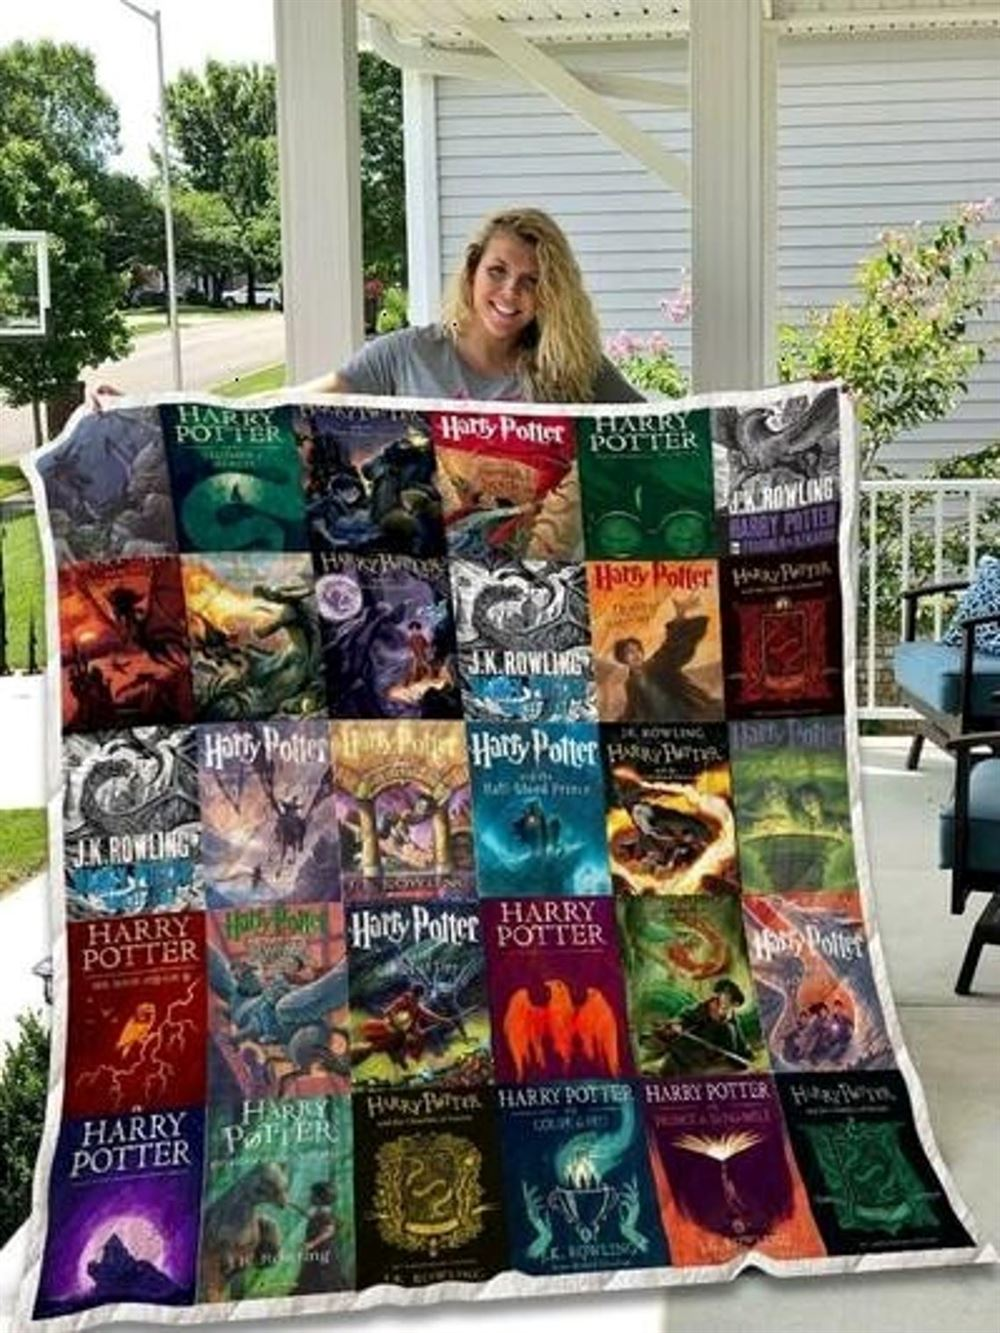 Harry Potter Quilt Blanket Gift For Fans Of Harry Potter Novels Adult Hooded Blanket Bedroom Personalized Customized Home Decor Gift